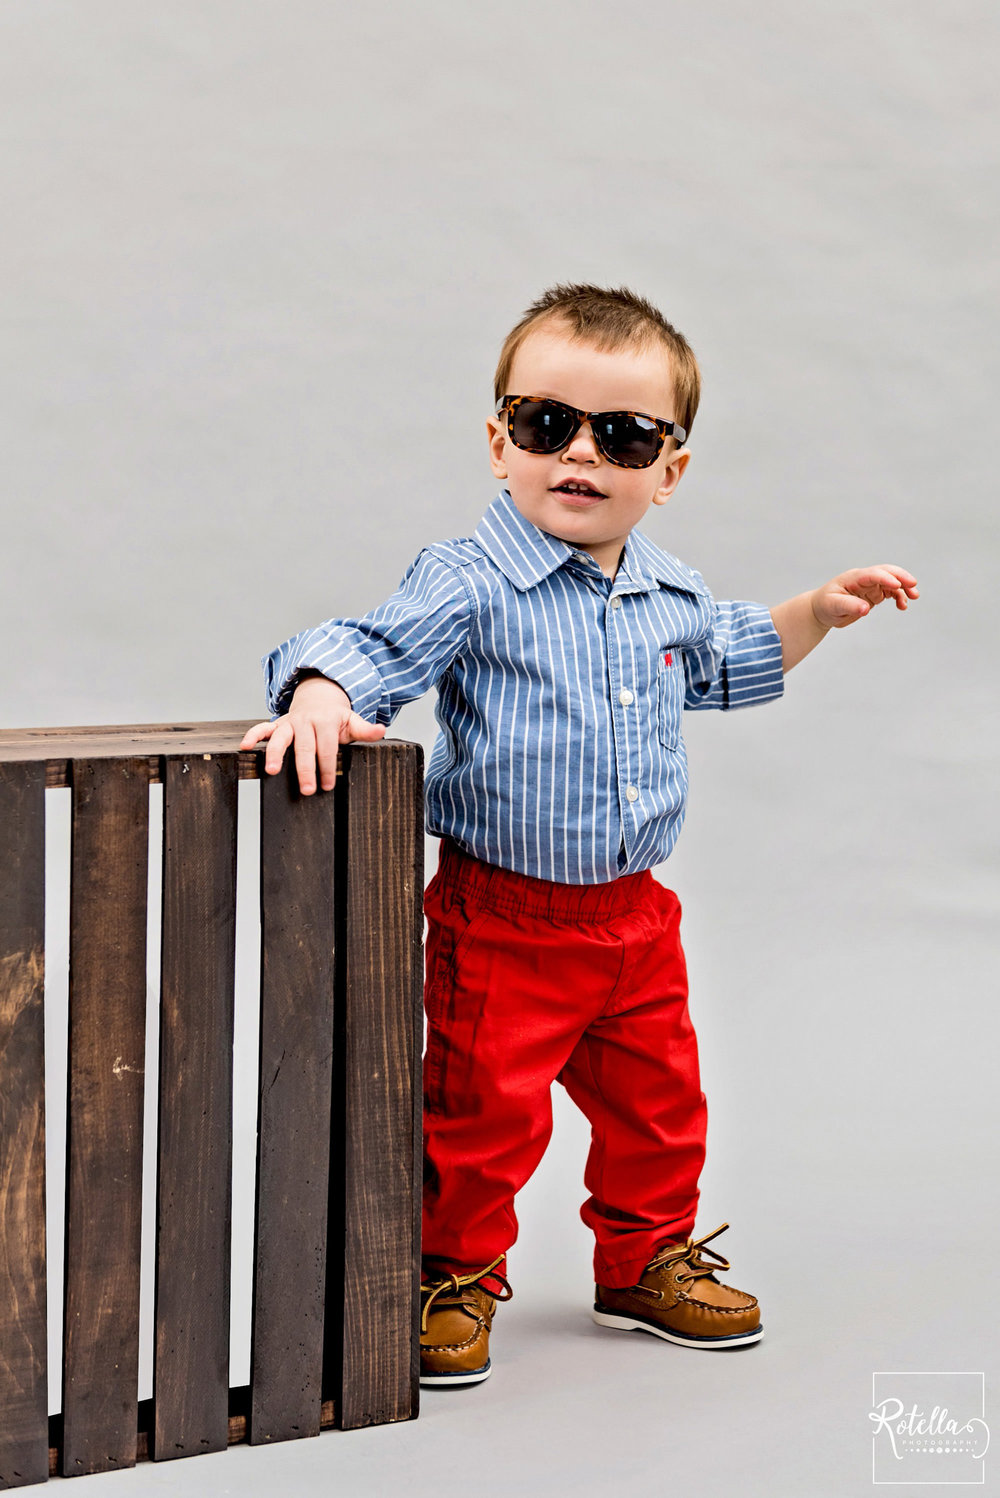 Rotella Photography baby smiling with sunglasses on grey backdrop